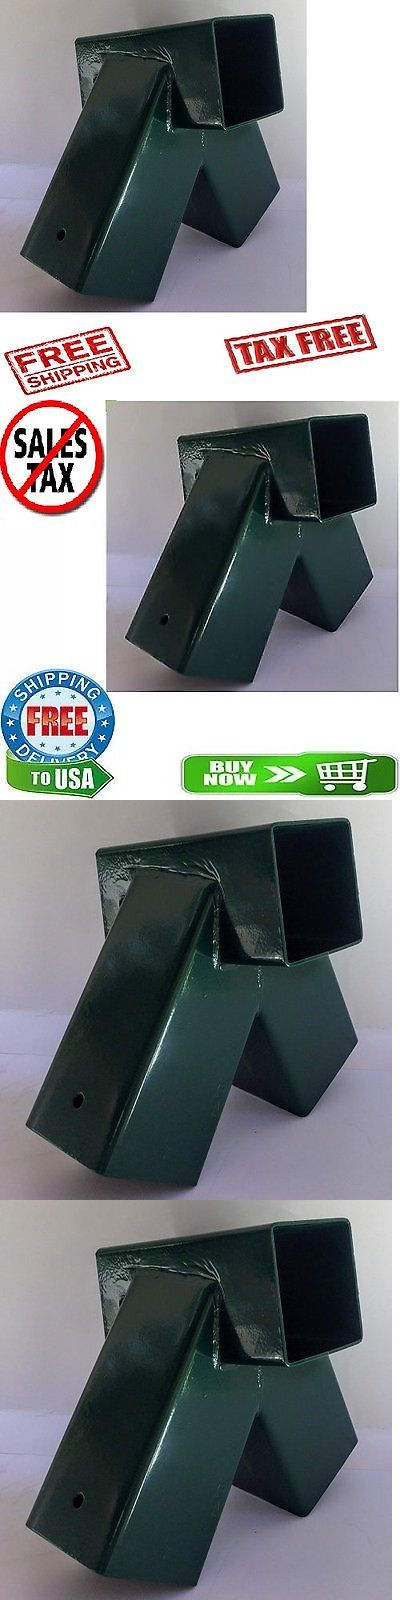 Swings Slides and Gyms 16515: 4 X4 Swing Set A-Frame Bracket - Green 2 Brackets, -> BUY IT NOW ONLY: $73.57 on eBay!